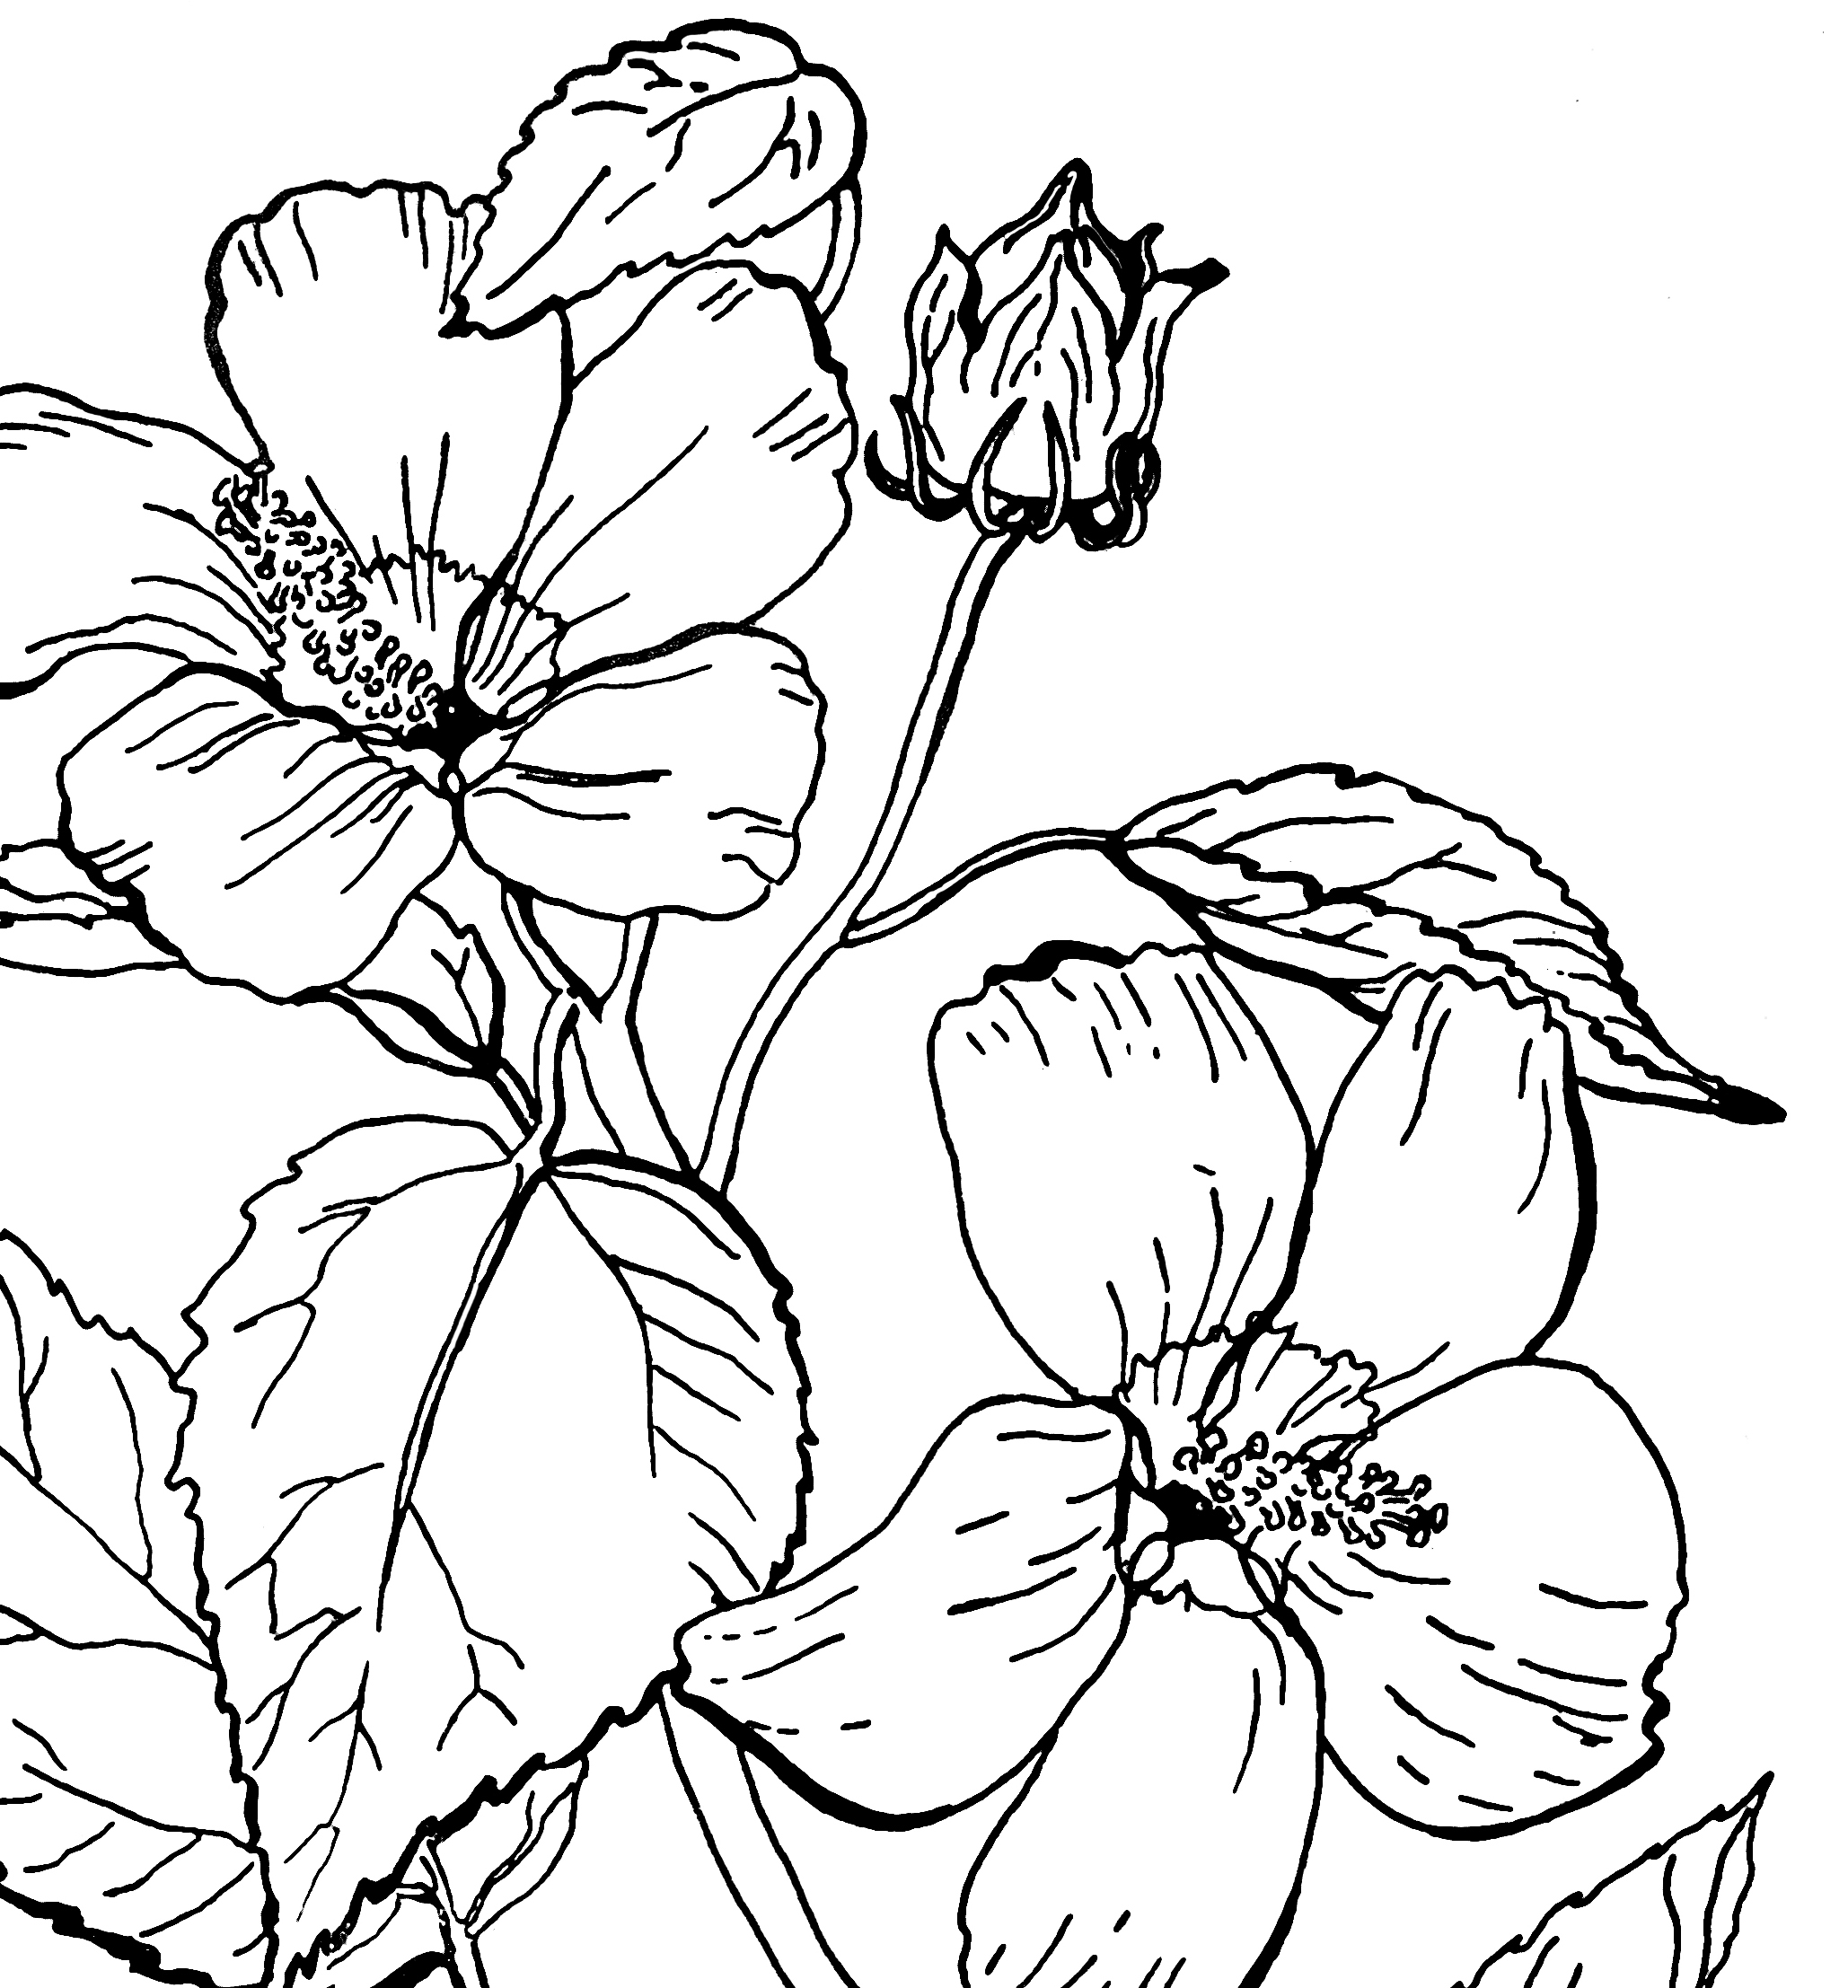 black and white coloring pages for adults free clipart of a black and white adult coloring page white pages adults and black coloring for